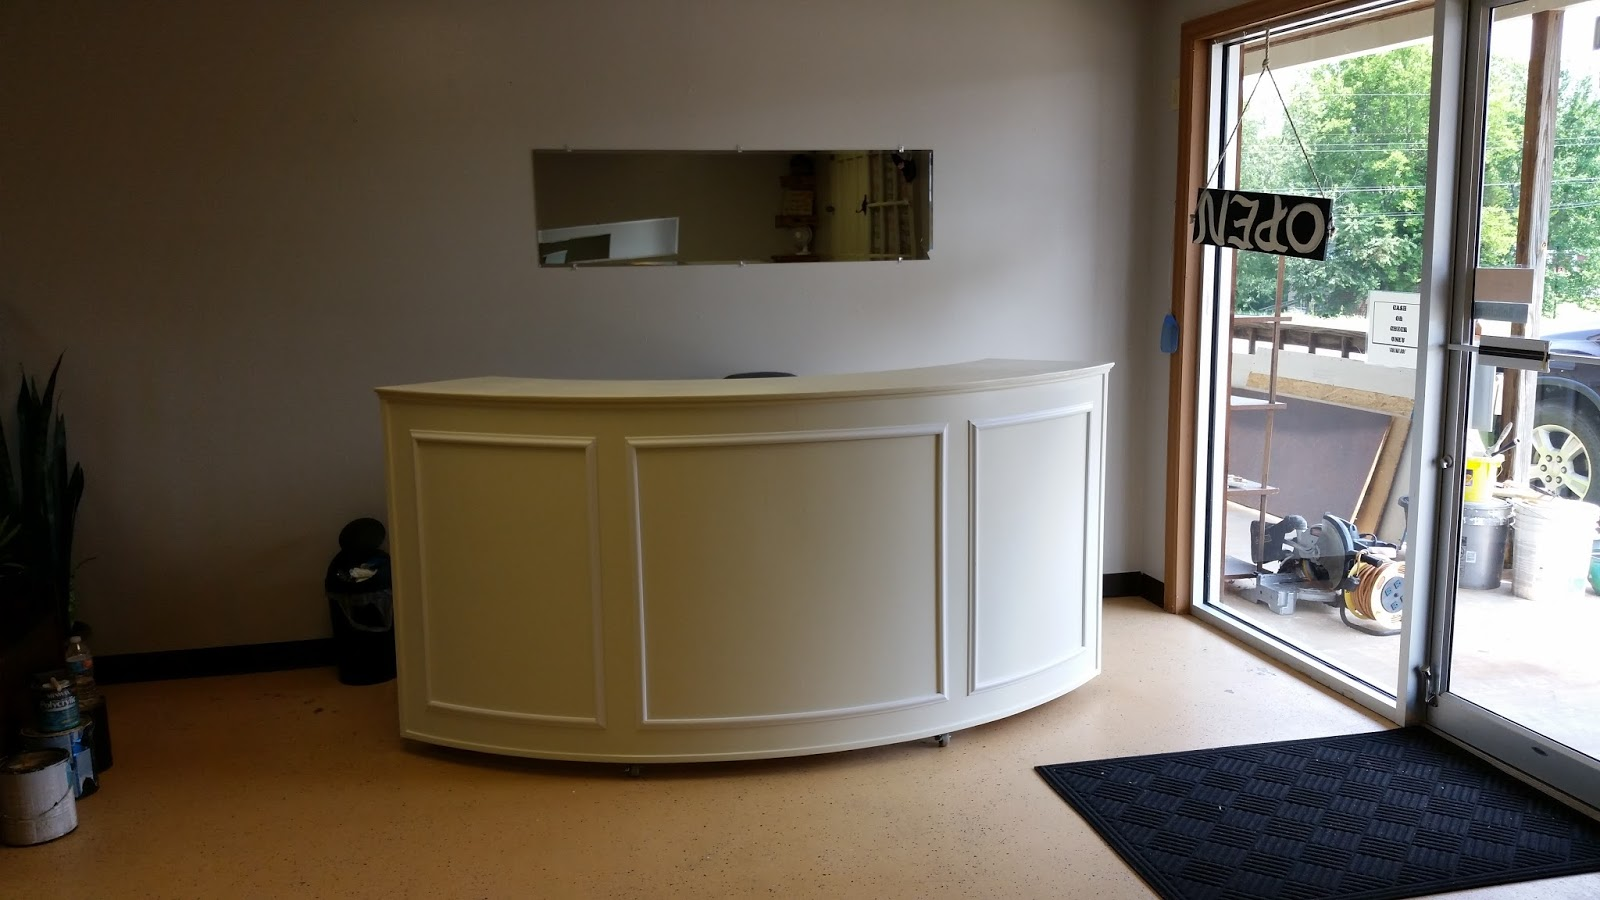 Building a Round Reception Desk